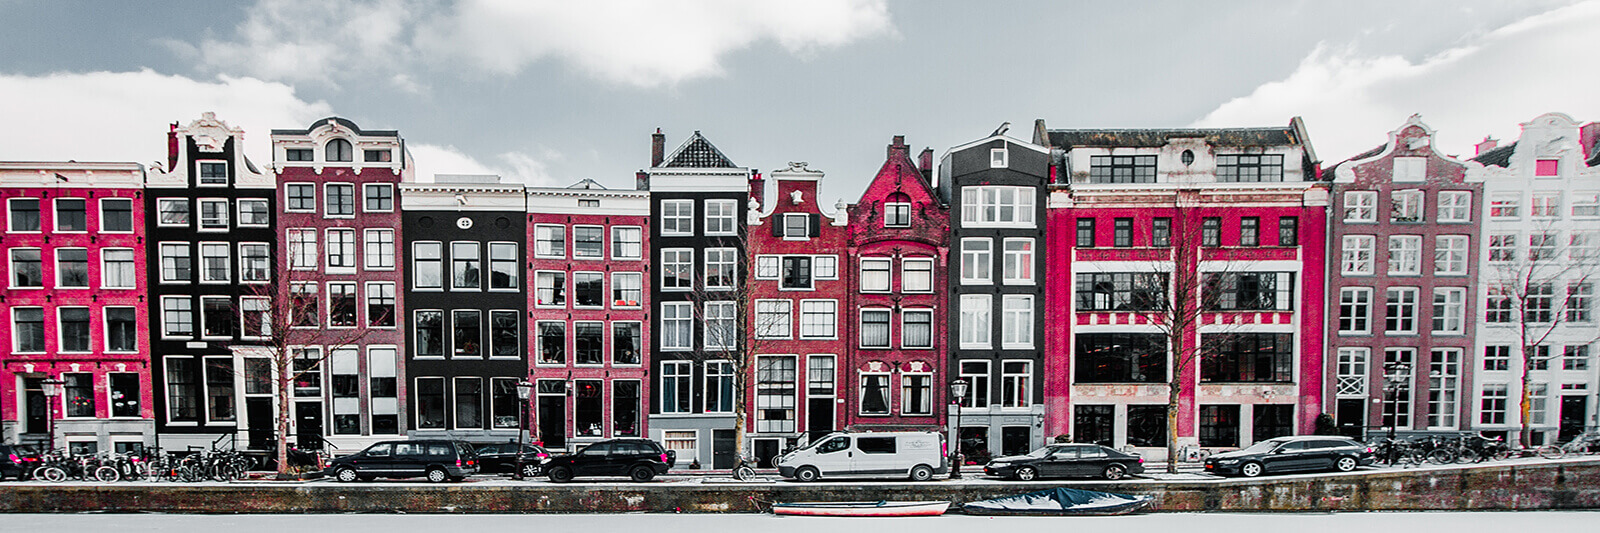 Colorful buildings in a frozen white Amsterdam winter -- welcome to the Netherlands